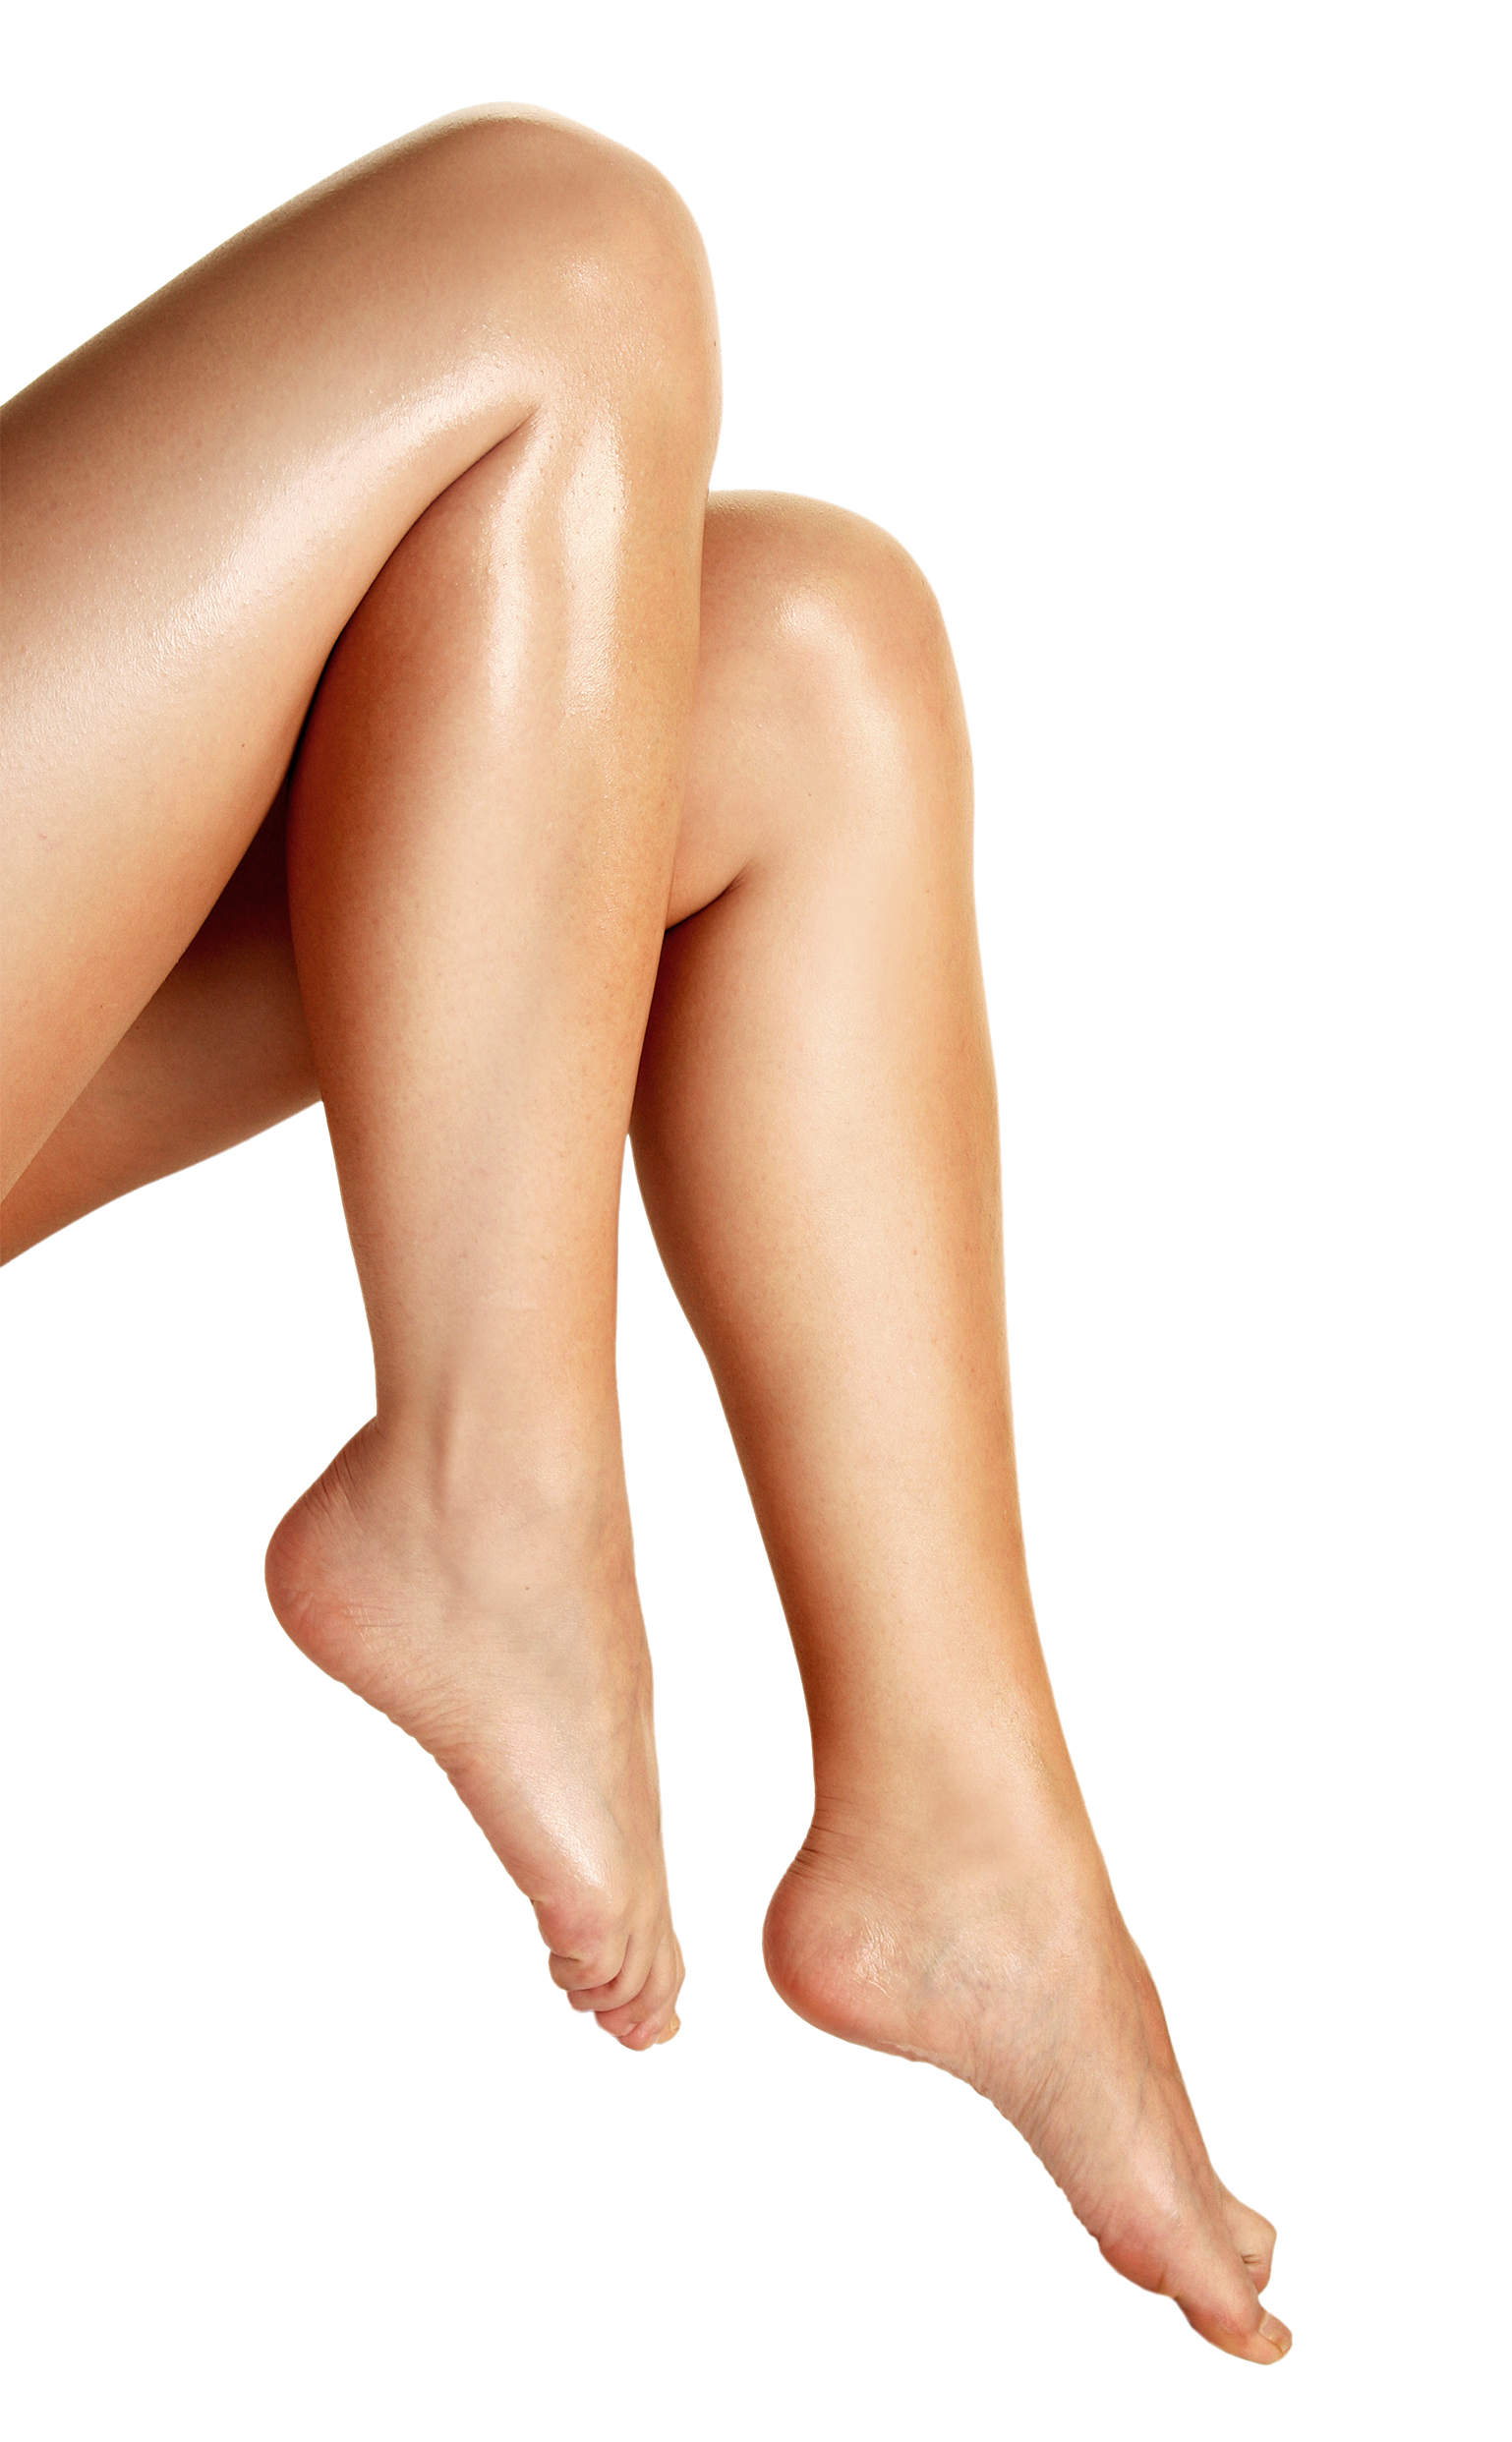 Images of Legs | 1538x2484